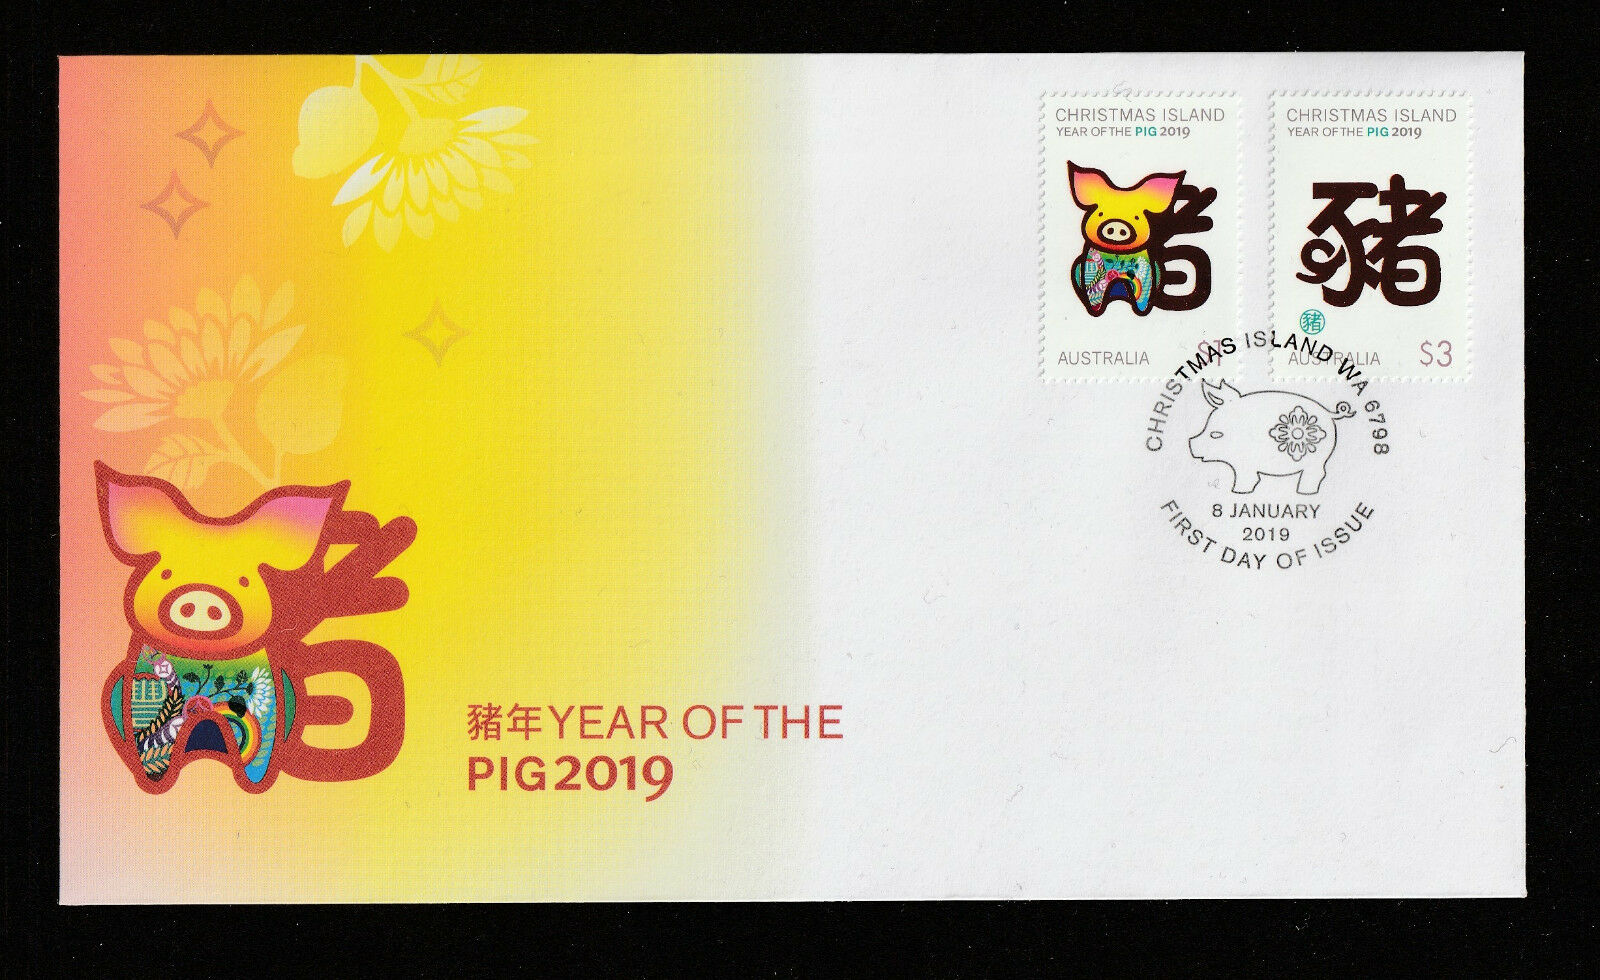 Christmas Island - Year of the Pig (January 8, 2019) first day cover 1